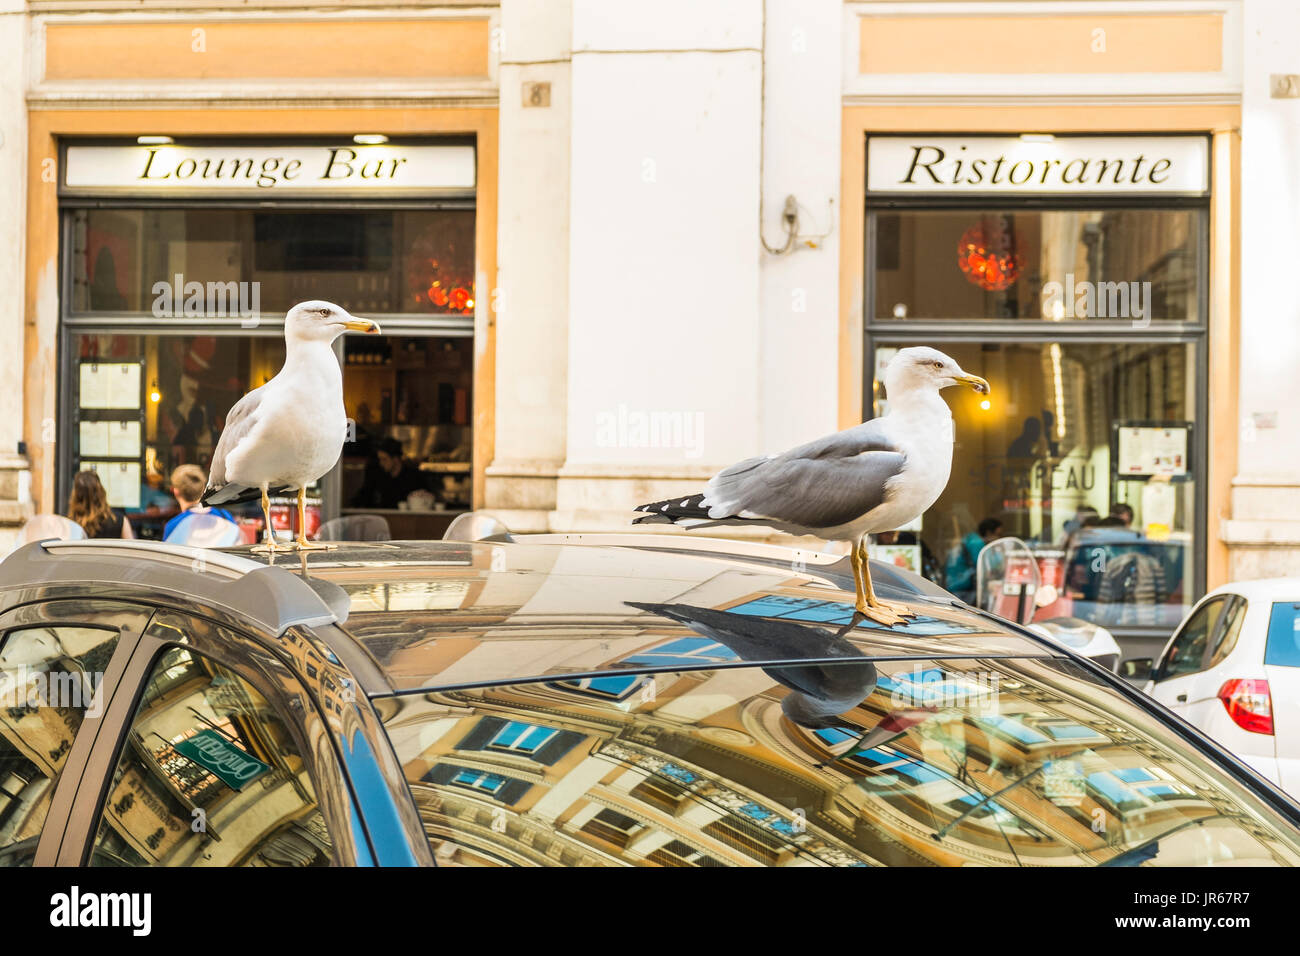 two seagulls resting on the roof of a car  withe the windows of a restaurant, lounge bar in the background - Stock Image